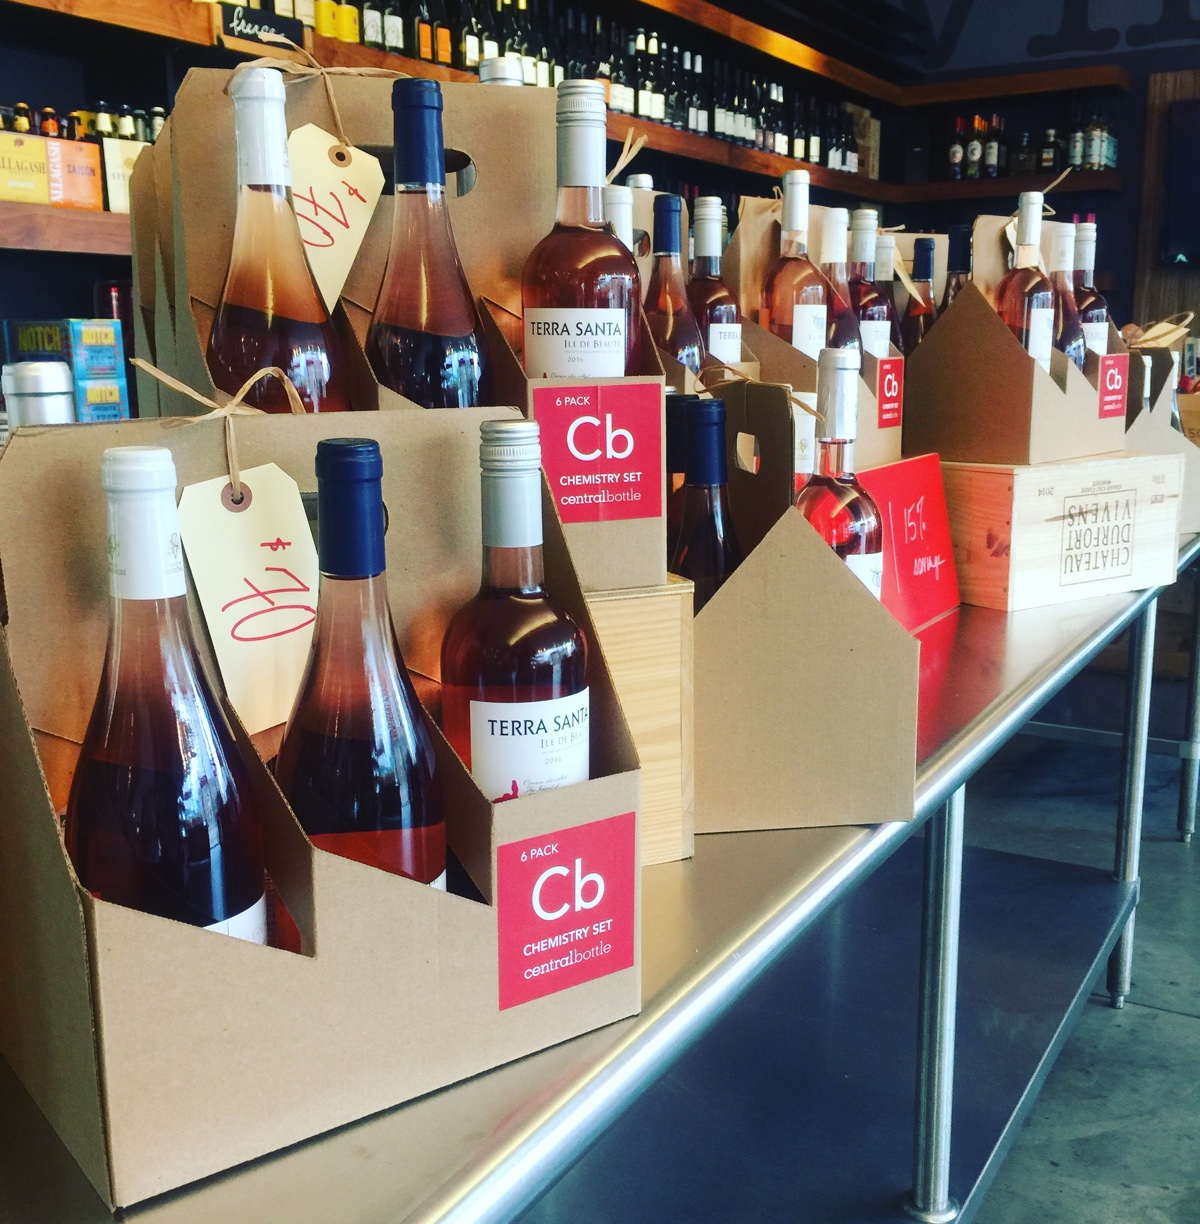 Central Bottle has a discounted six pack of French roses on Memorial Day weekend